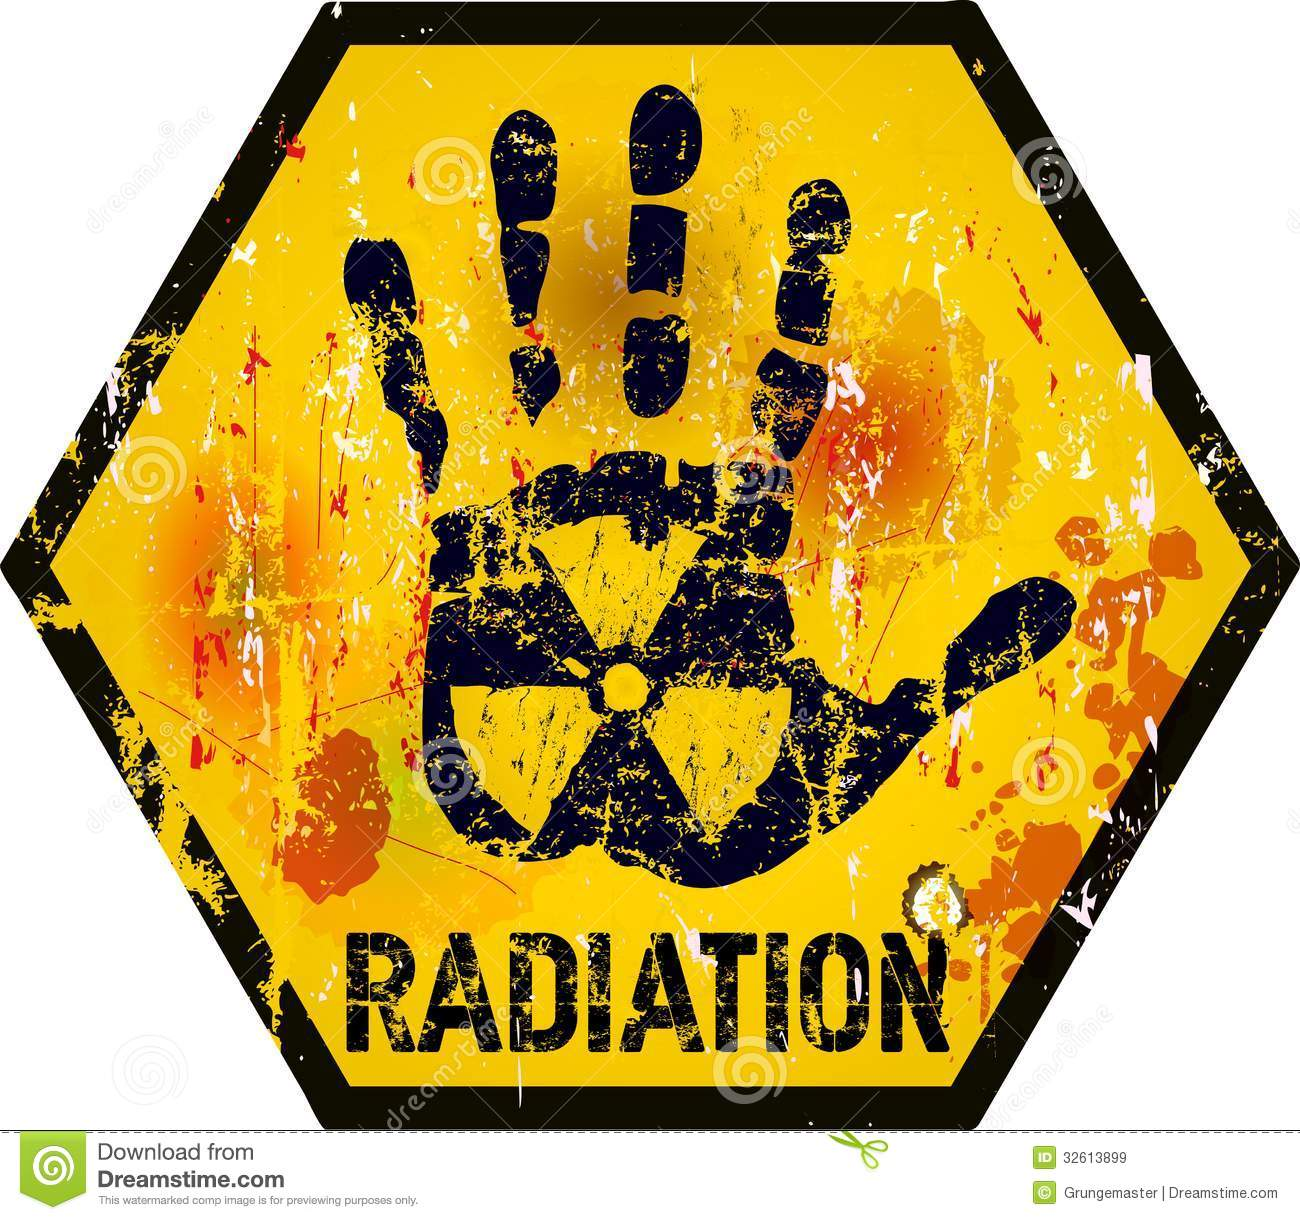 Nuclear Radiation Royalty Free Stock Images.